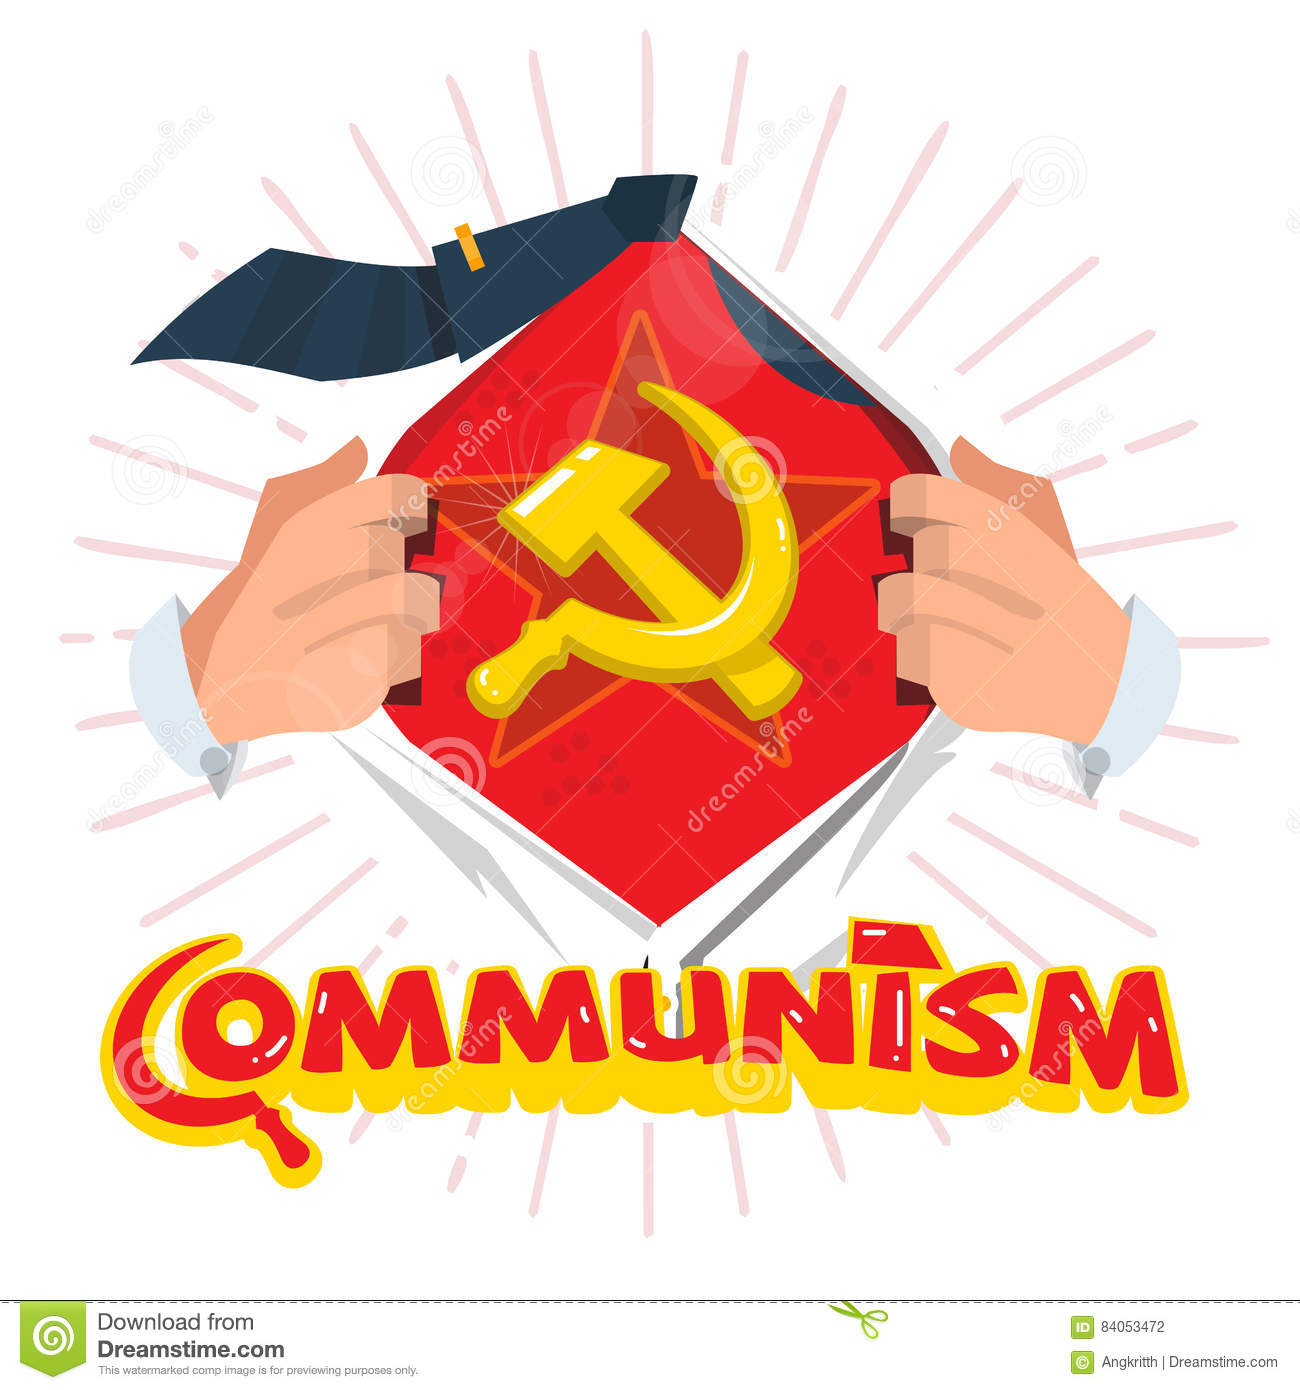 Man open shirt to show socialist symbols with redstar communism man open shirt to show socialist symbols with redstar communism biocorpaavc